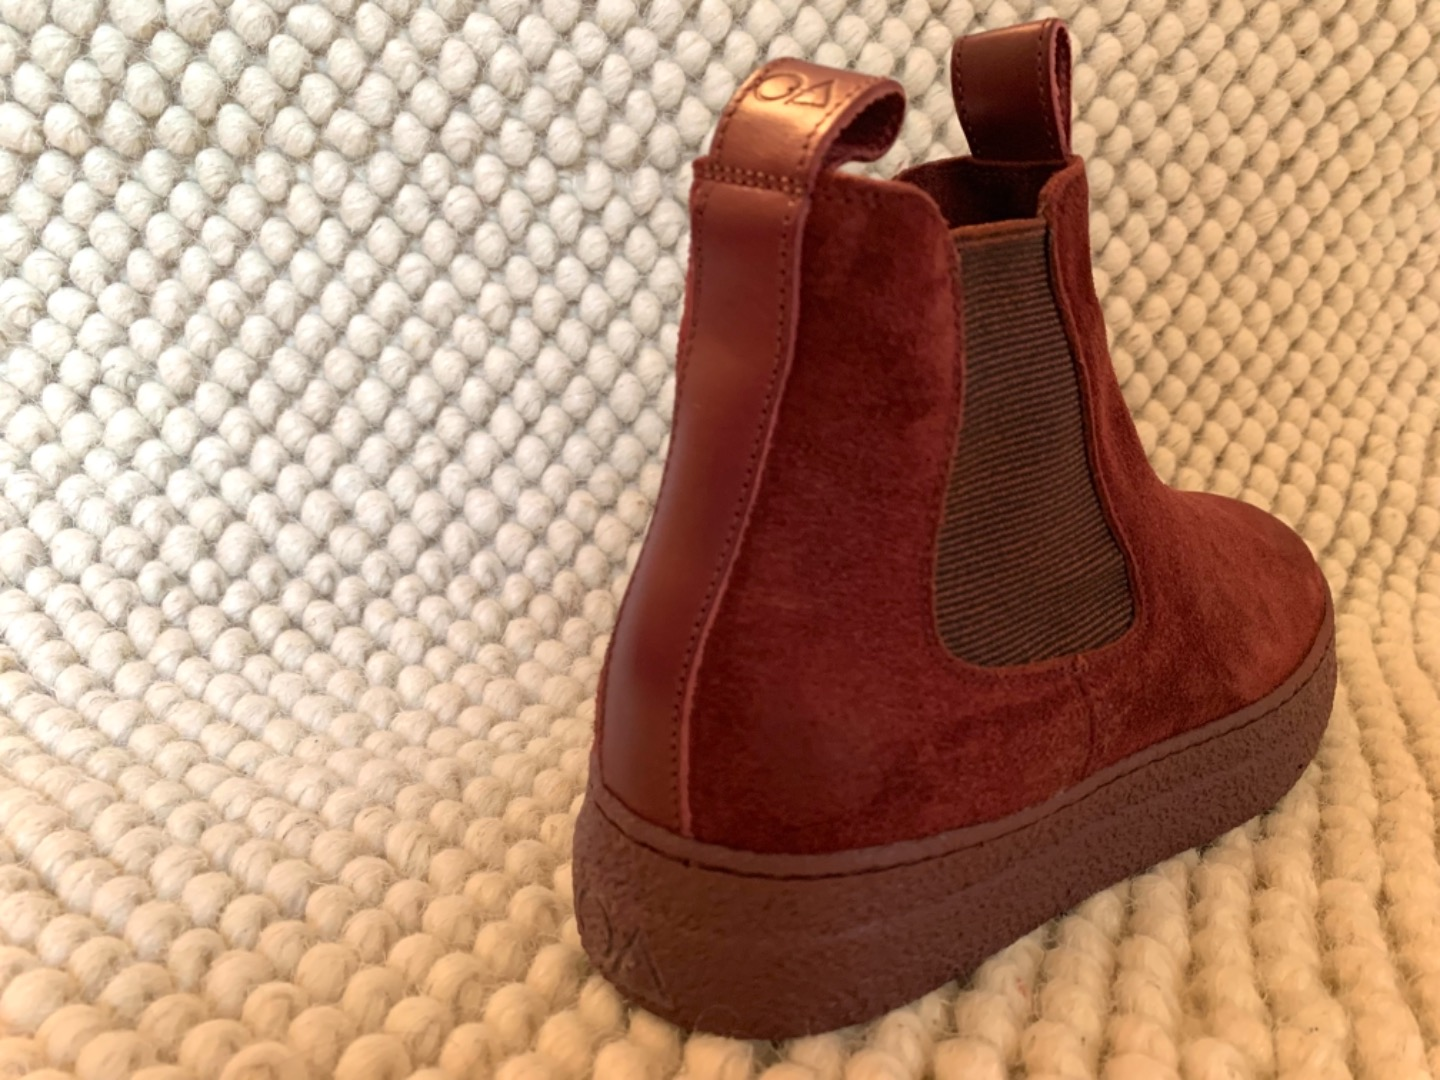 Oanon-fashion Wow Bordo lined with wool